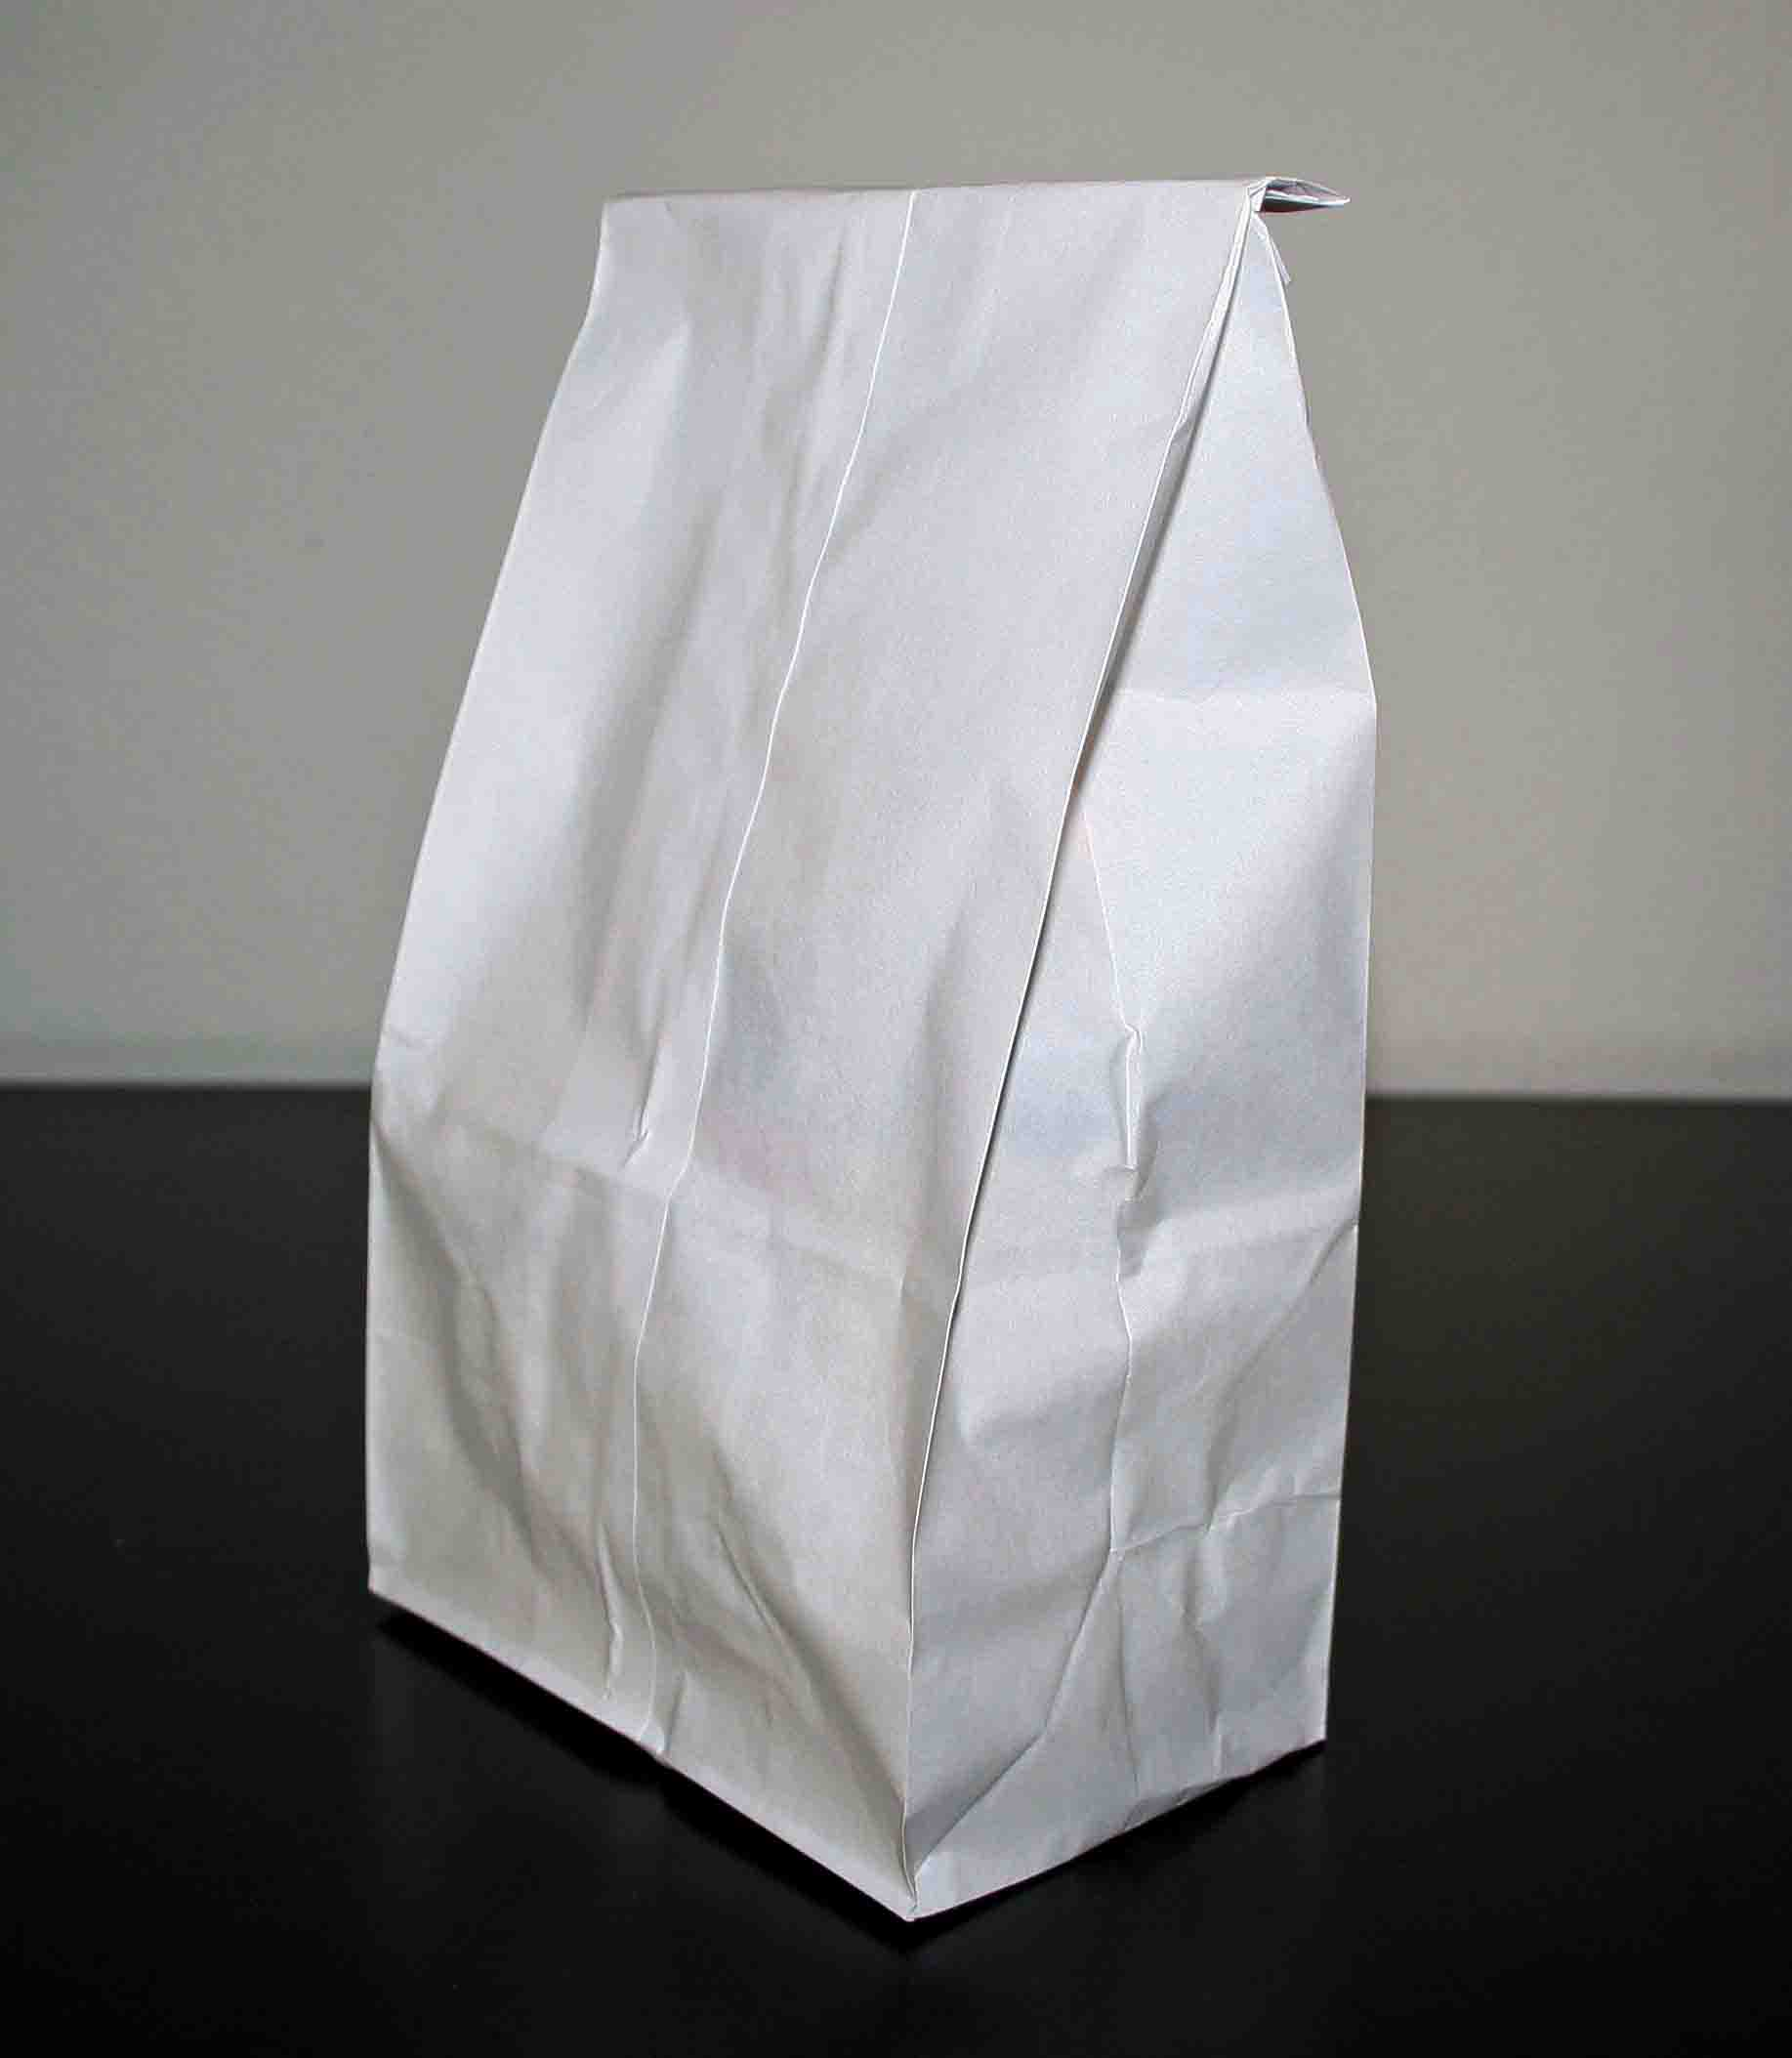 Are sandwich bags recyclable